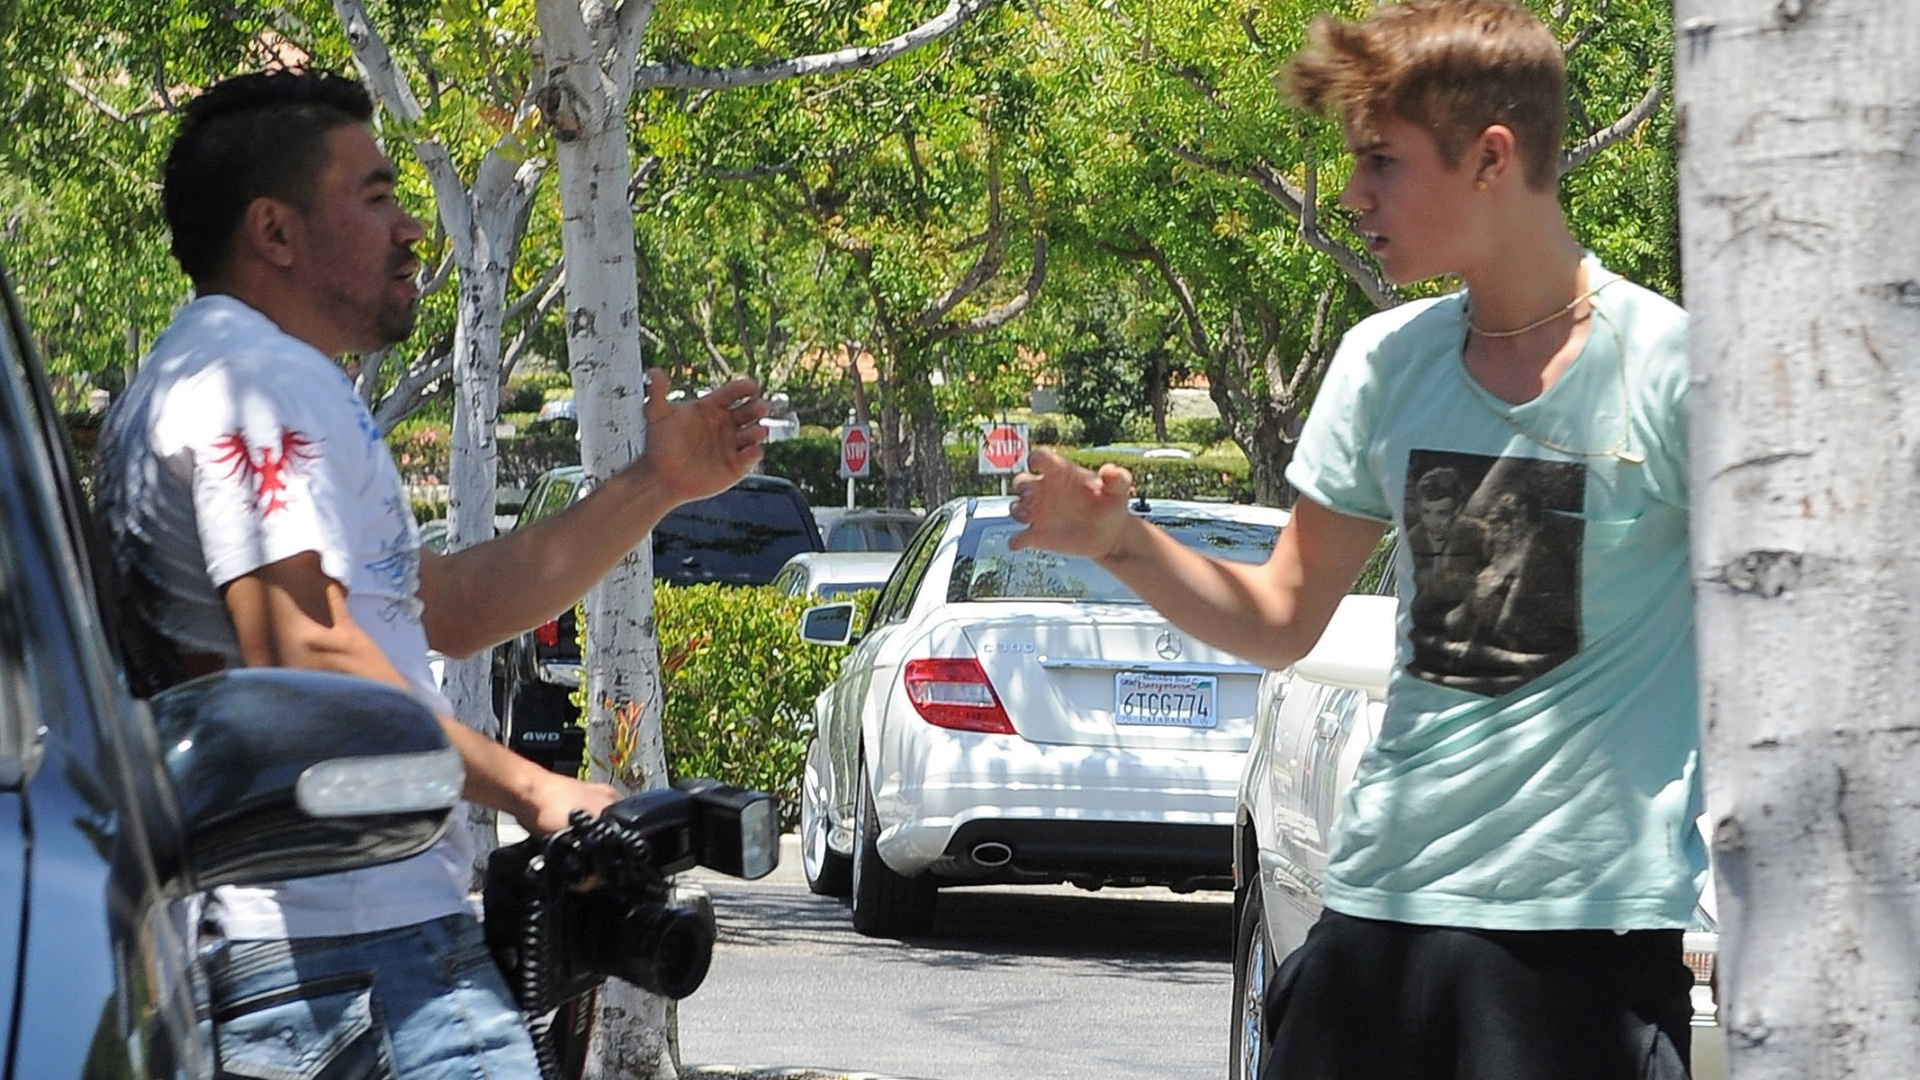 Justin Bieber discute com paparazzo em Los Angeles. Cantor pode ser interrogado por suposta agresso ao fotgrafo (27/5/12)